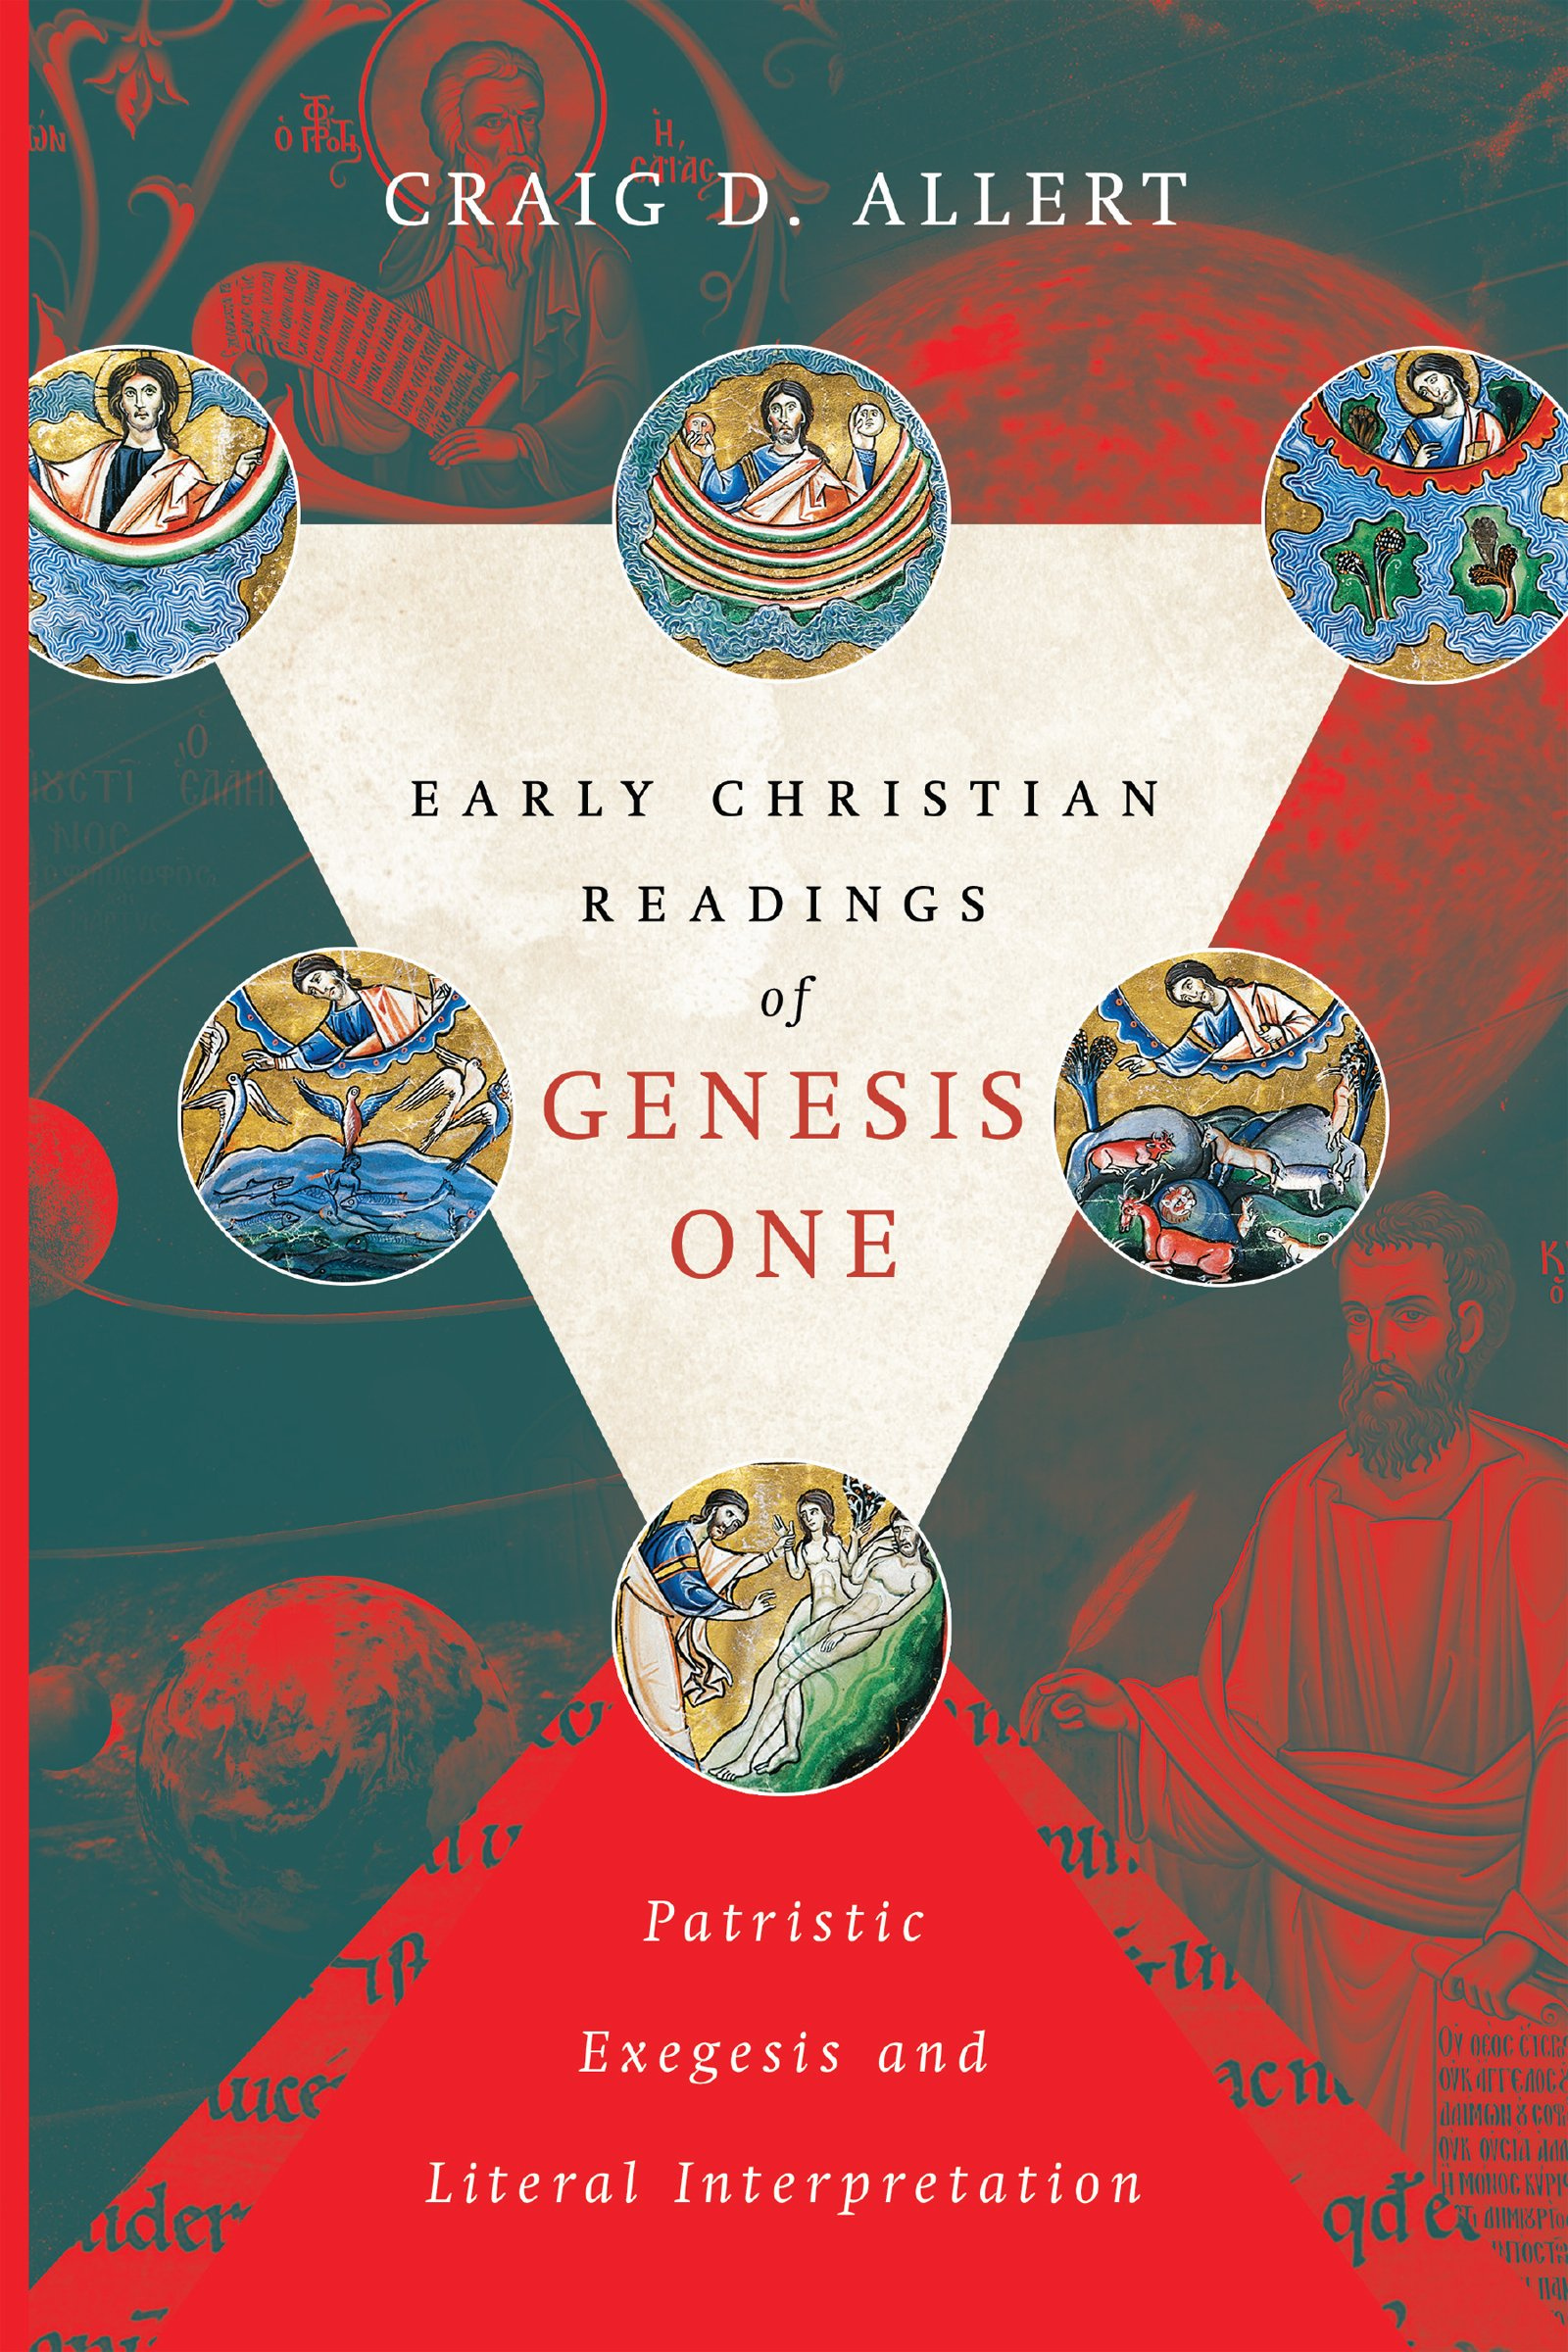 Early Christian Readings of Genesis One: Patristic Exegesis and Literal  Interpretation: Craig D. Allert: 9780830852017: Amazon.com: Books